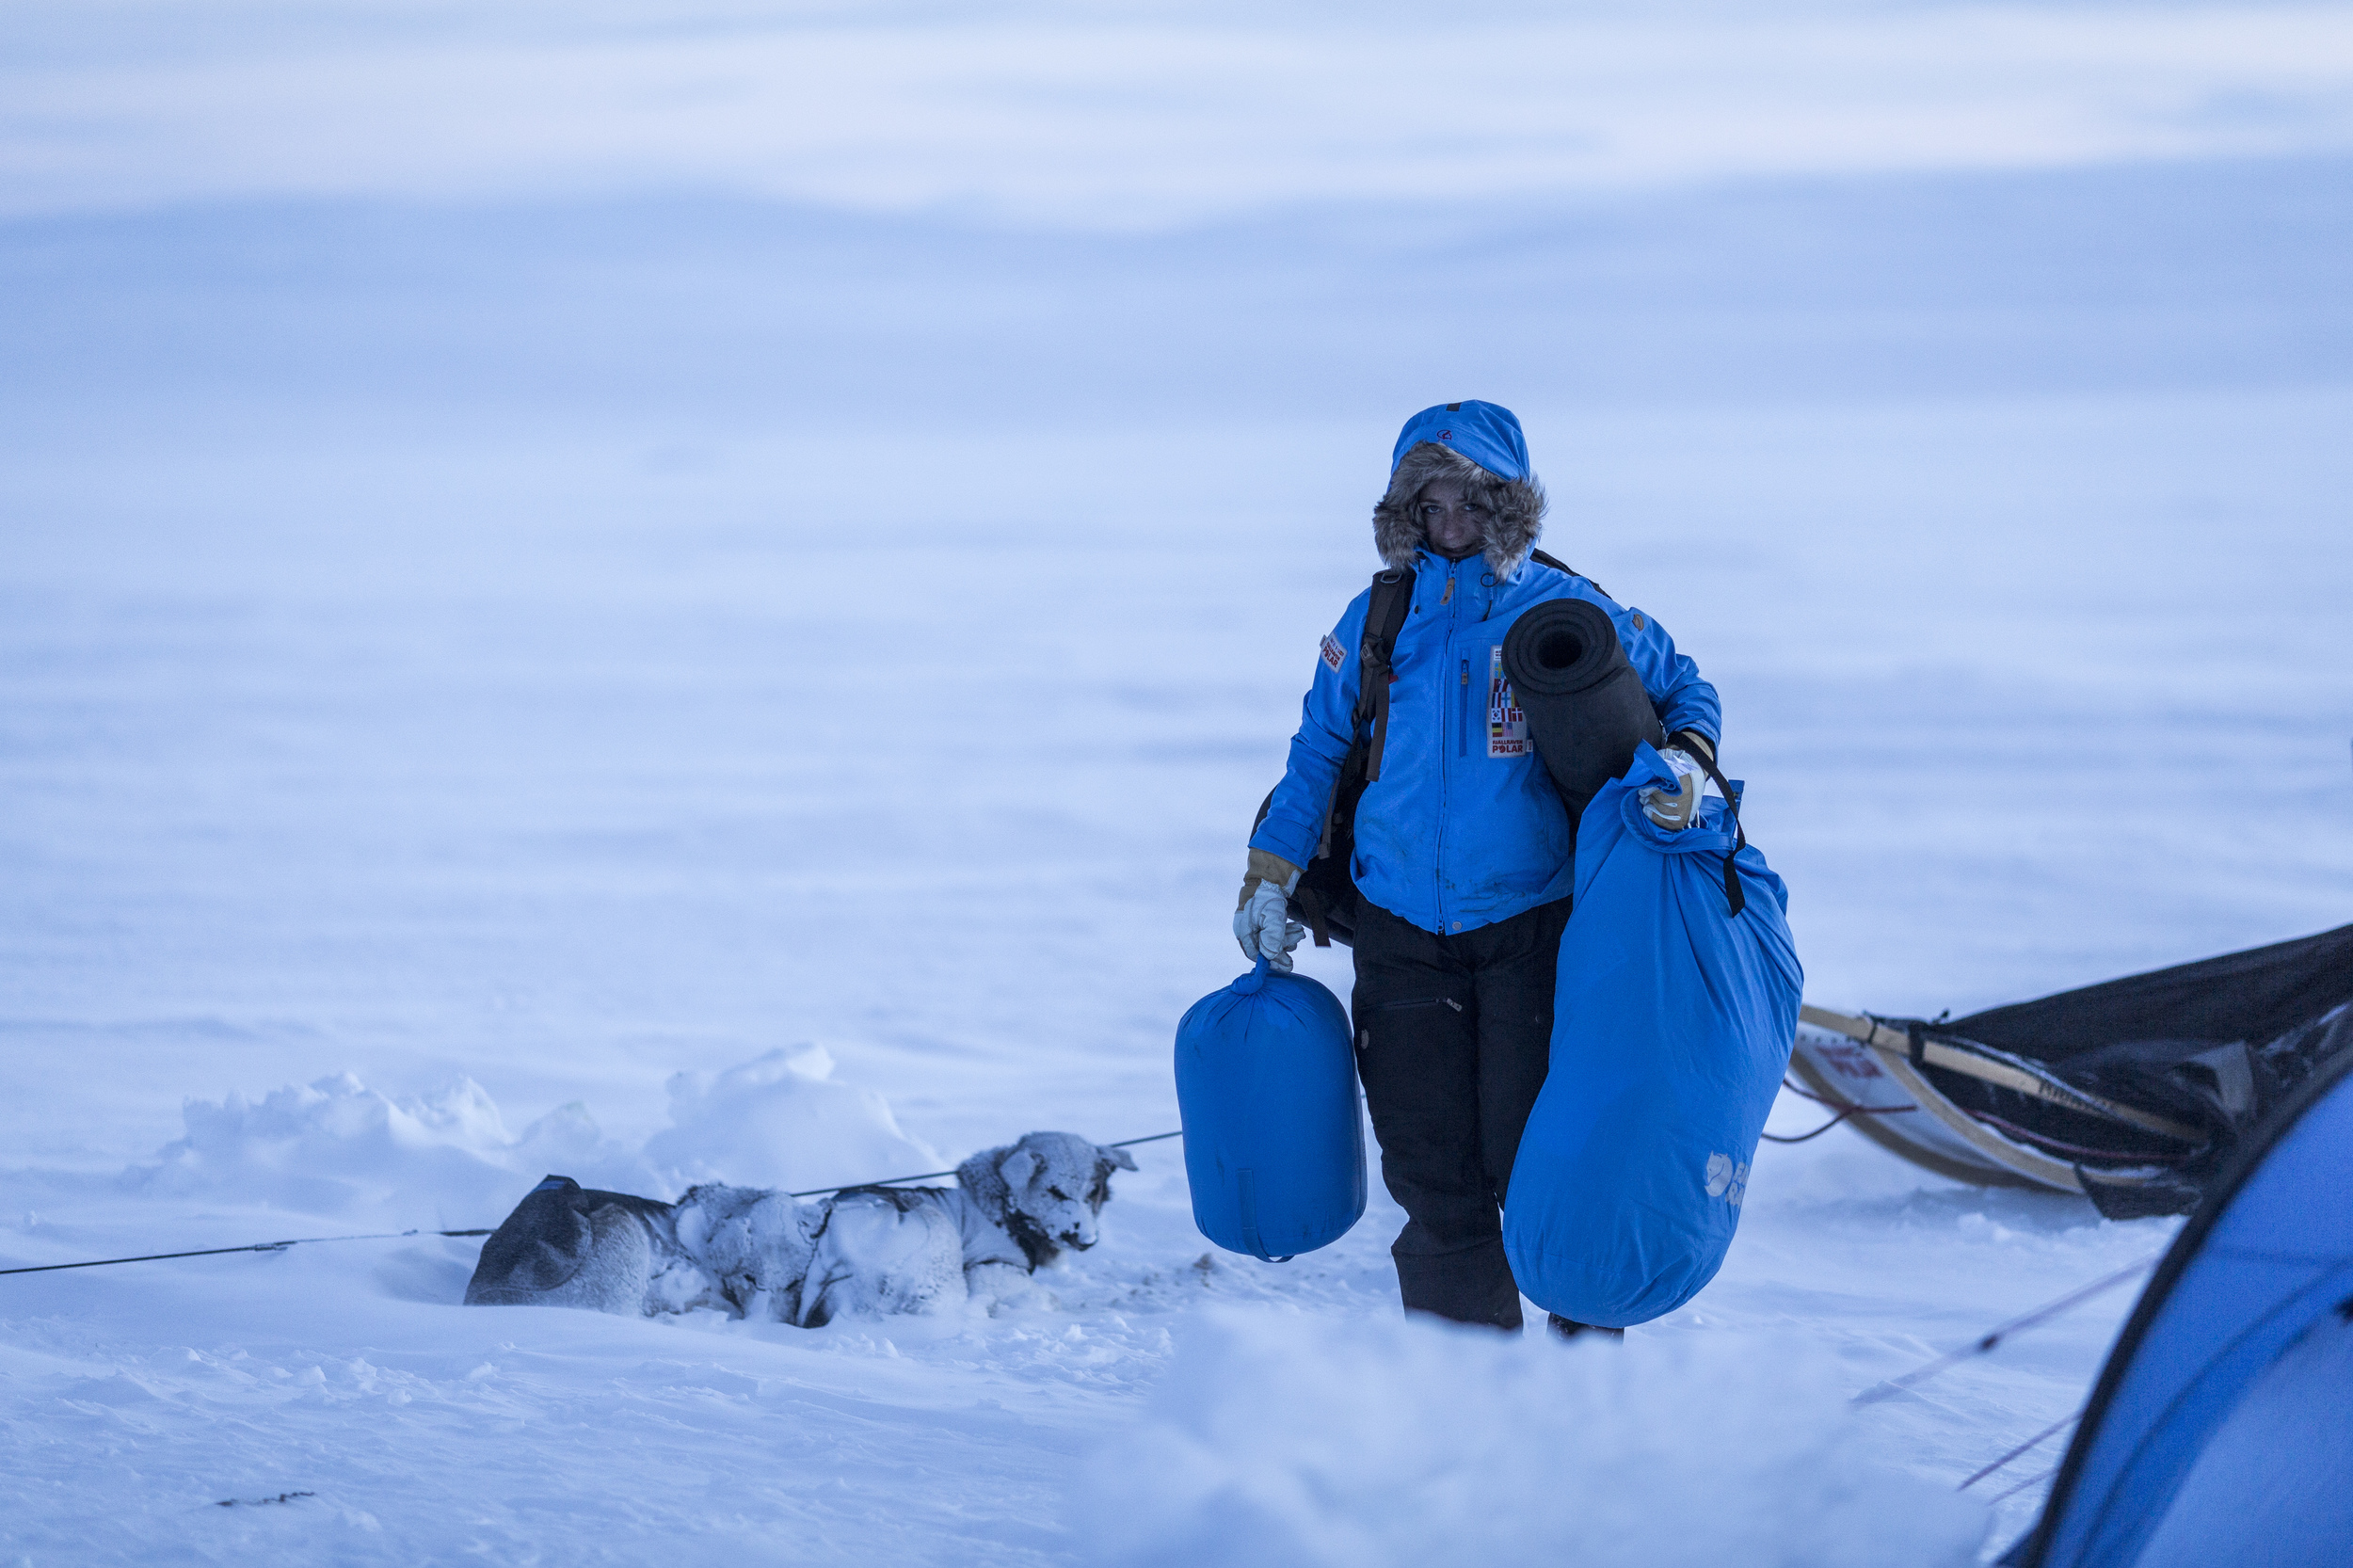 As the sun begnins to set of Råstu, German Fjällräven Polar participant Melanie Ward unpacks her sled and prepares to make camp. (Photo by Håkan Wike for Fjällräven International. All rights reserved.)